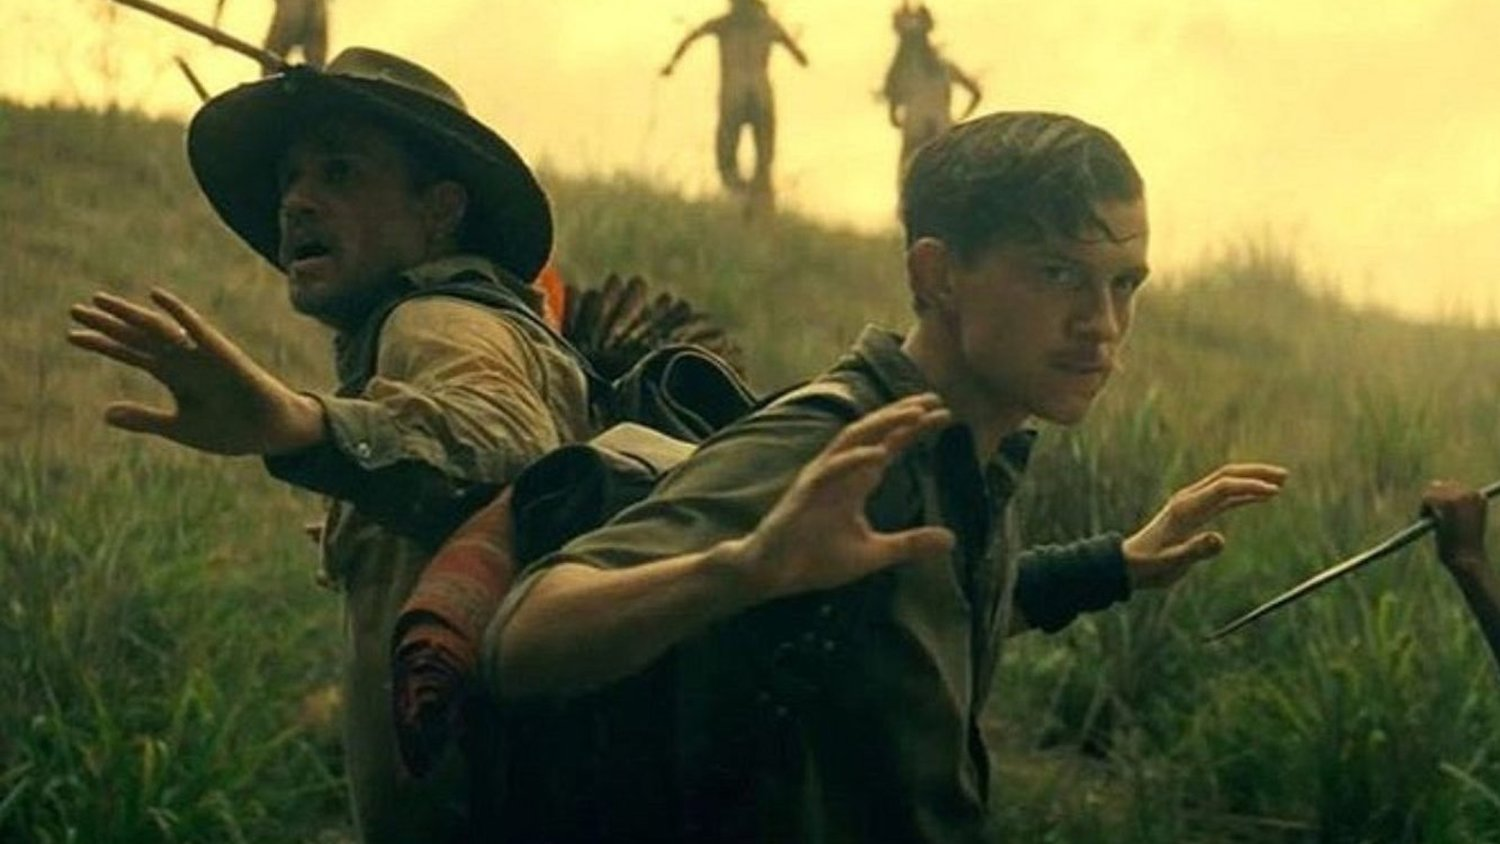 Adventure-Filled New Trailer for THE LOST CITY OF Z with Charlie Hunnam and Tom Holland